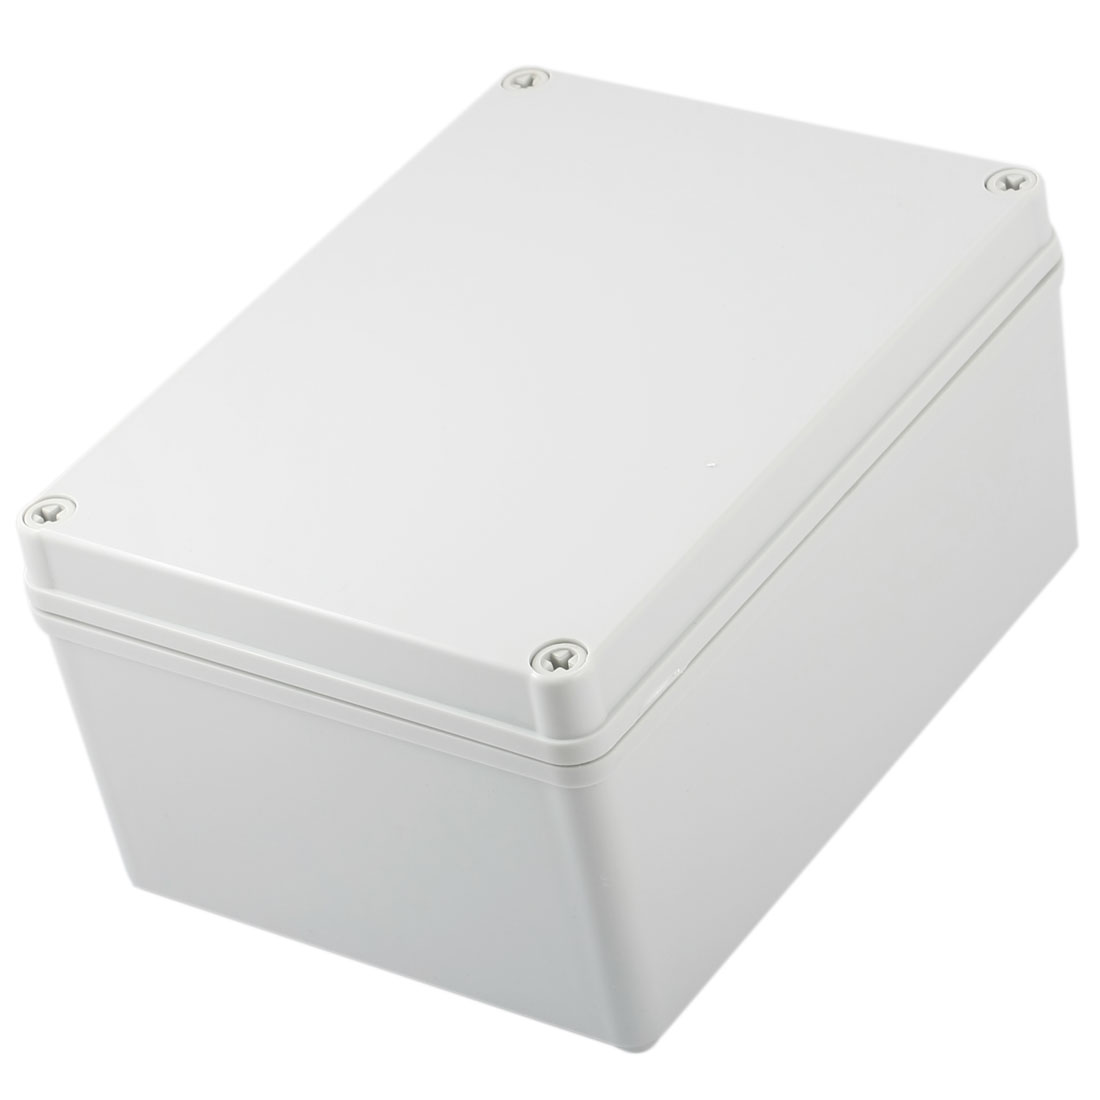 200mm x 145mm x 100mm Waterproof Rectangle Plastic Sealed Junction Enclose Box Power Protection Case